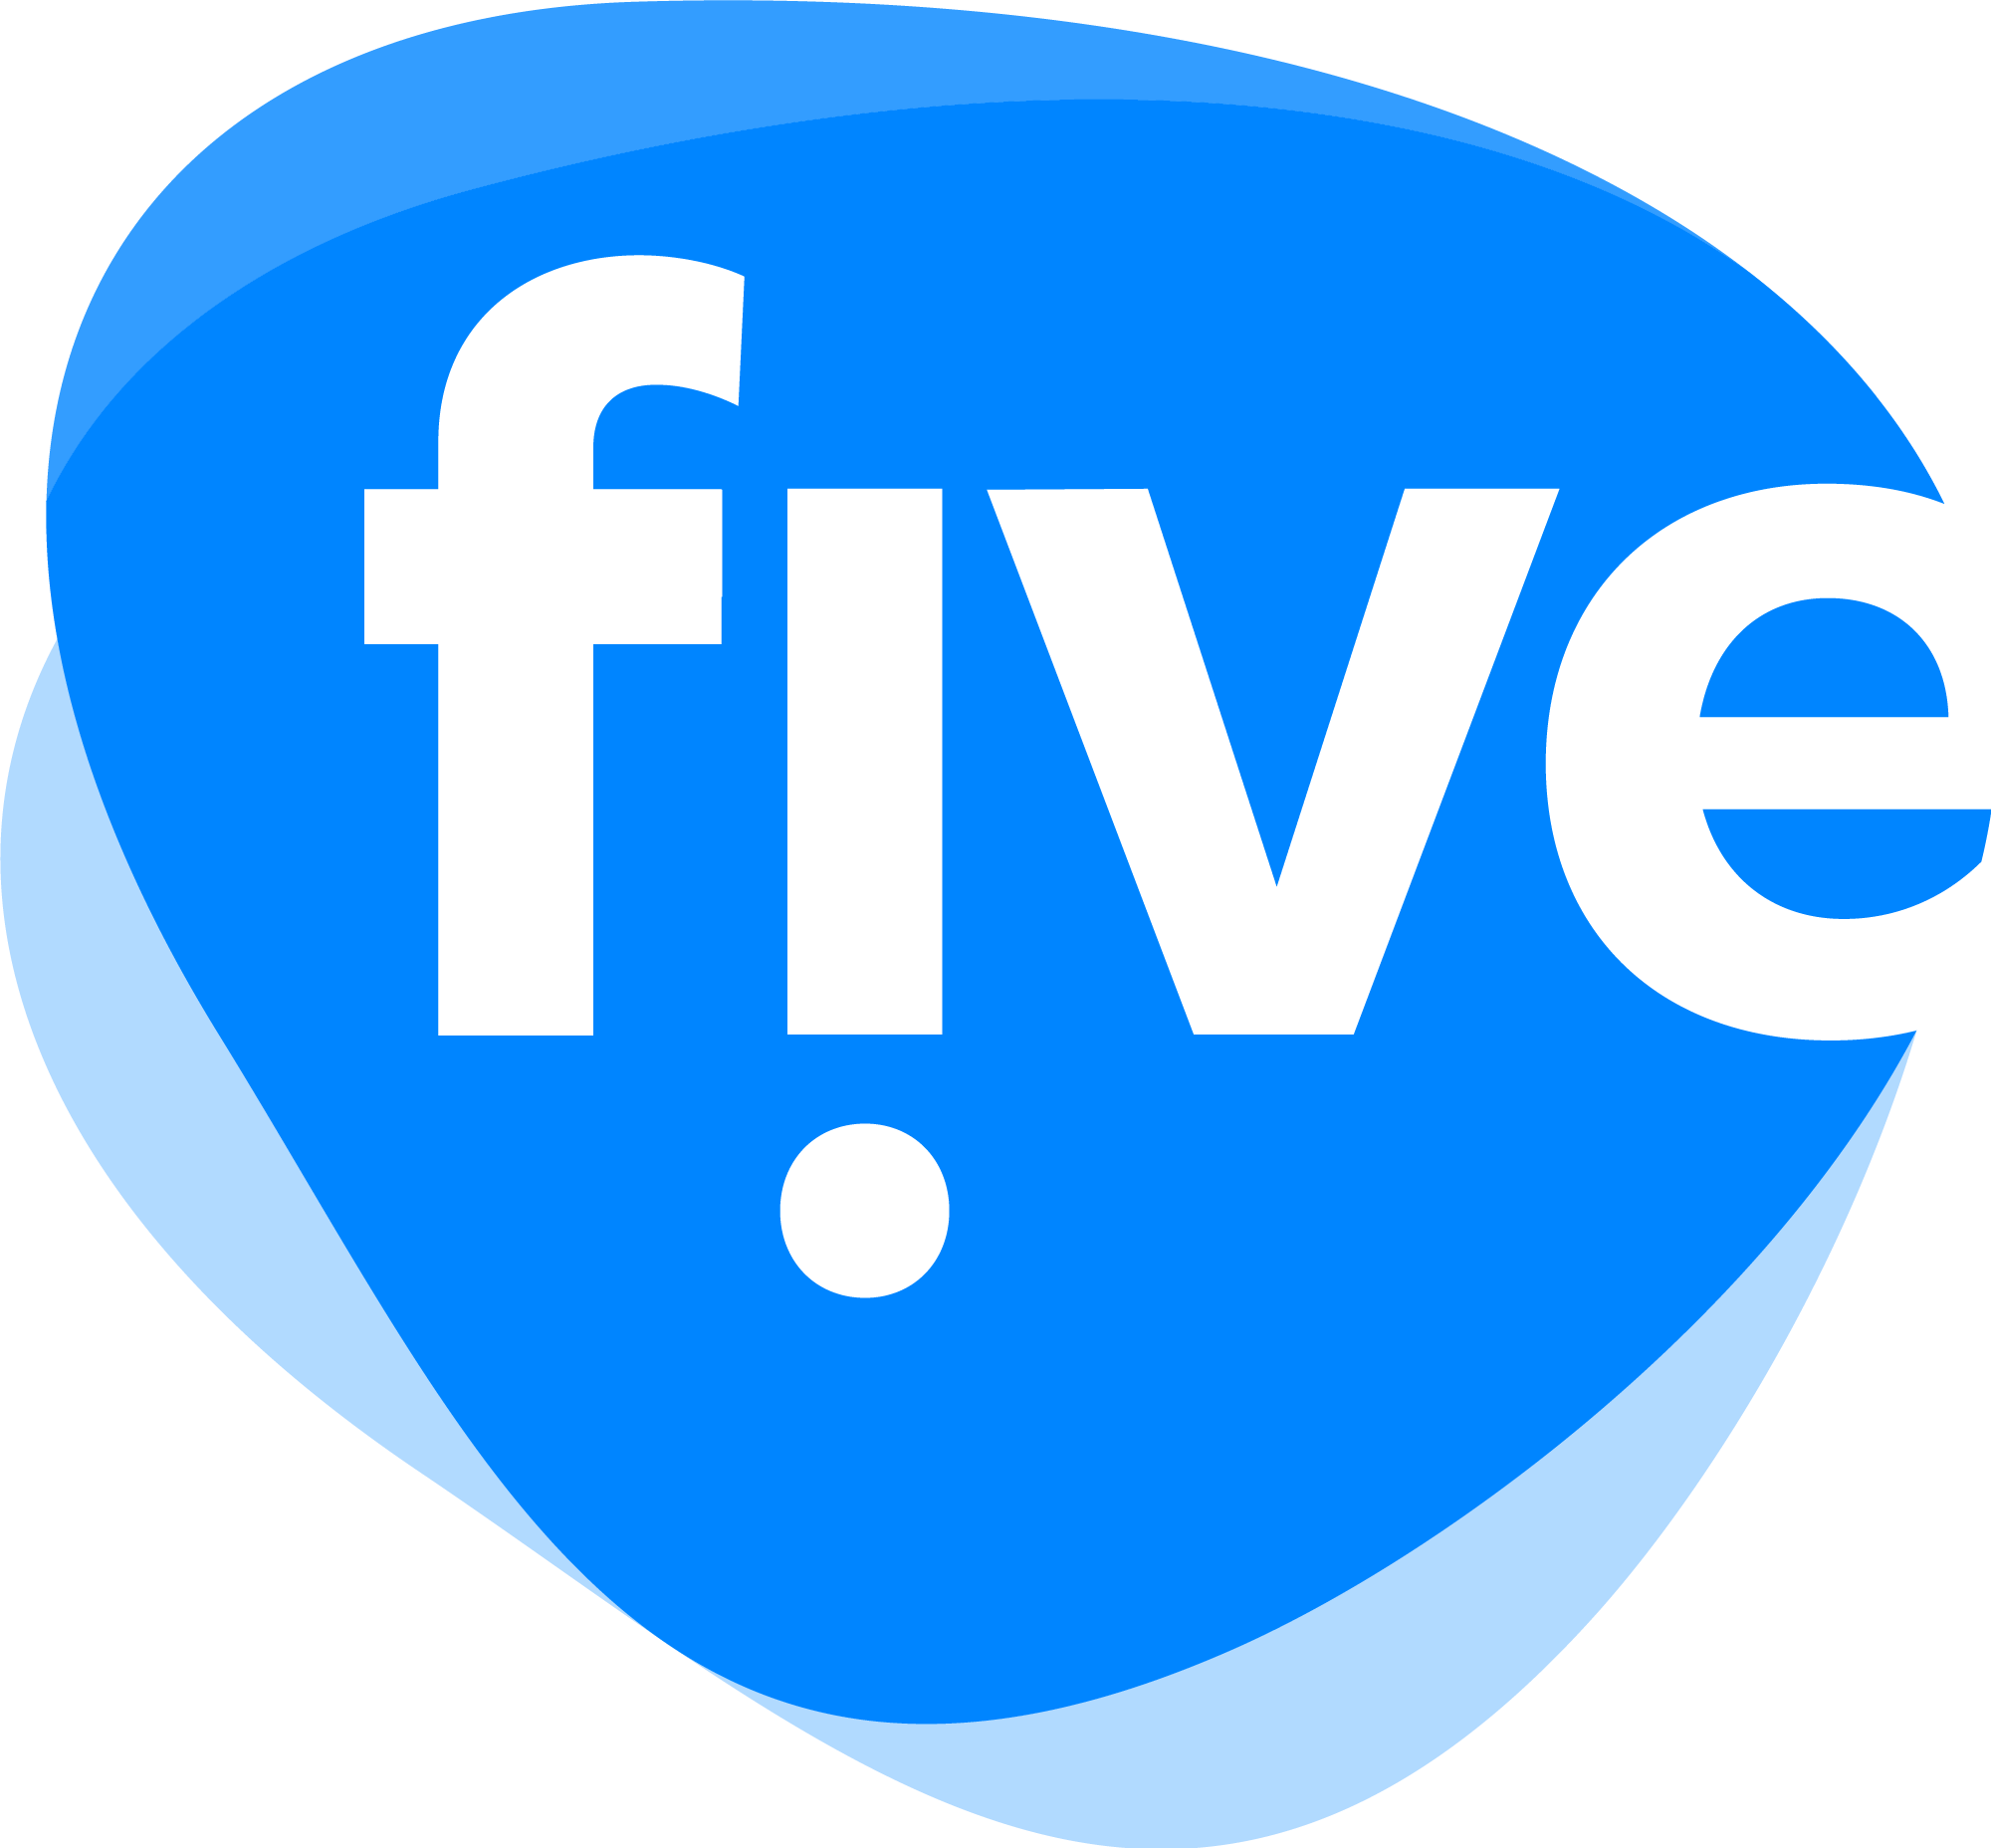 five_digital_logo